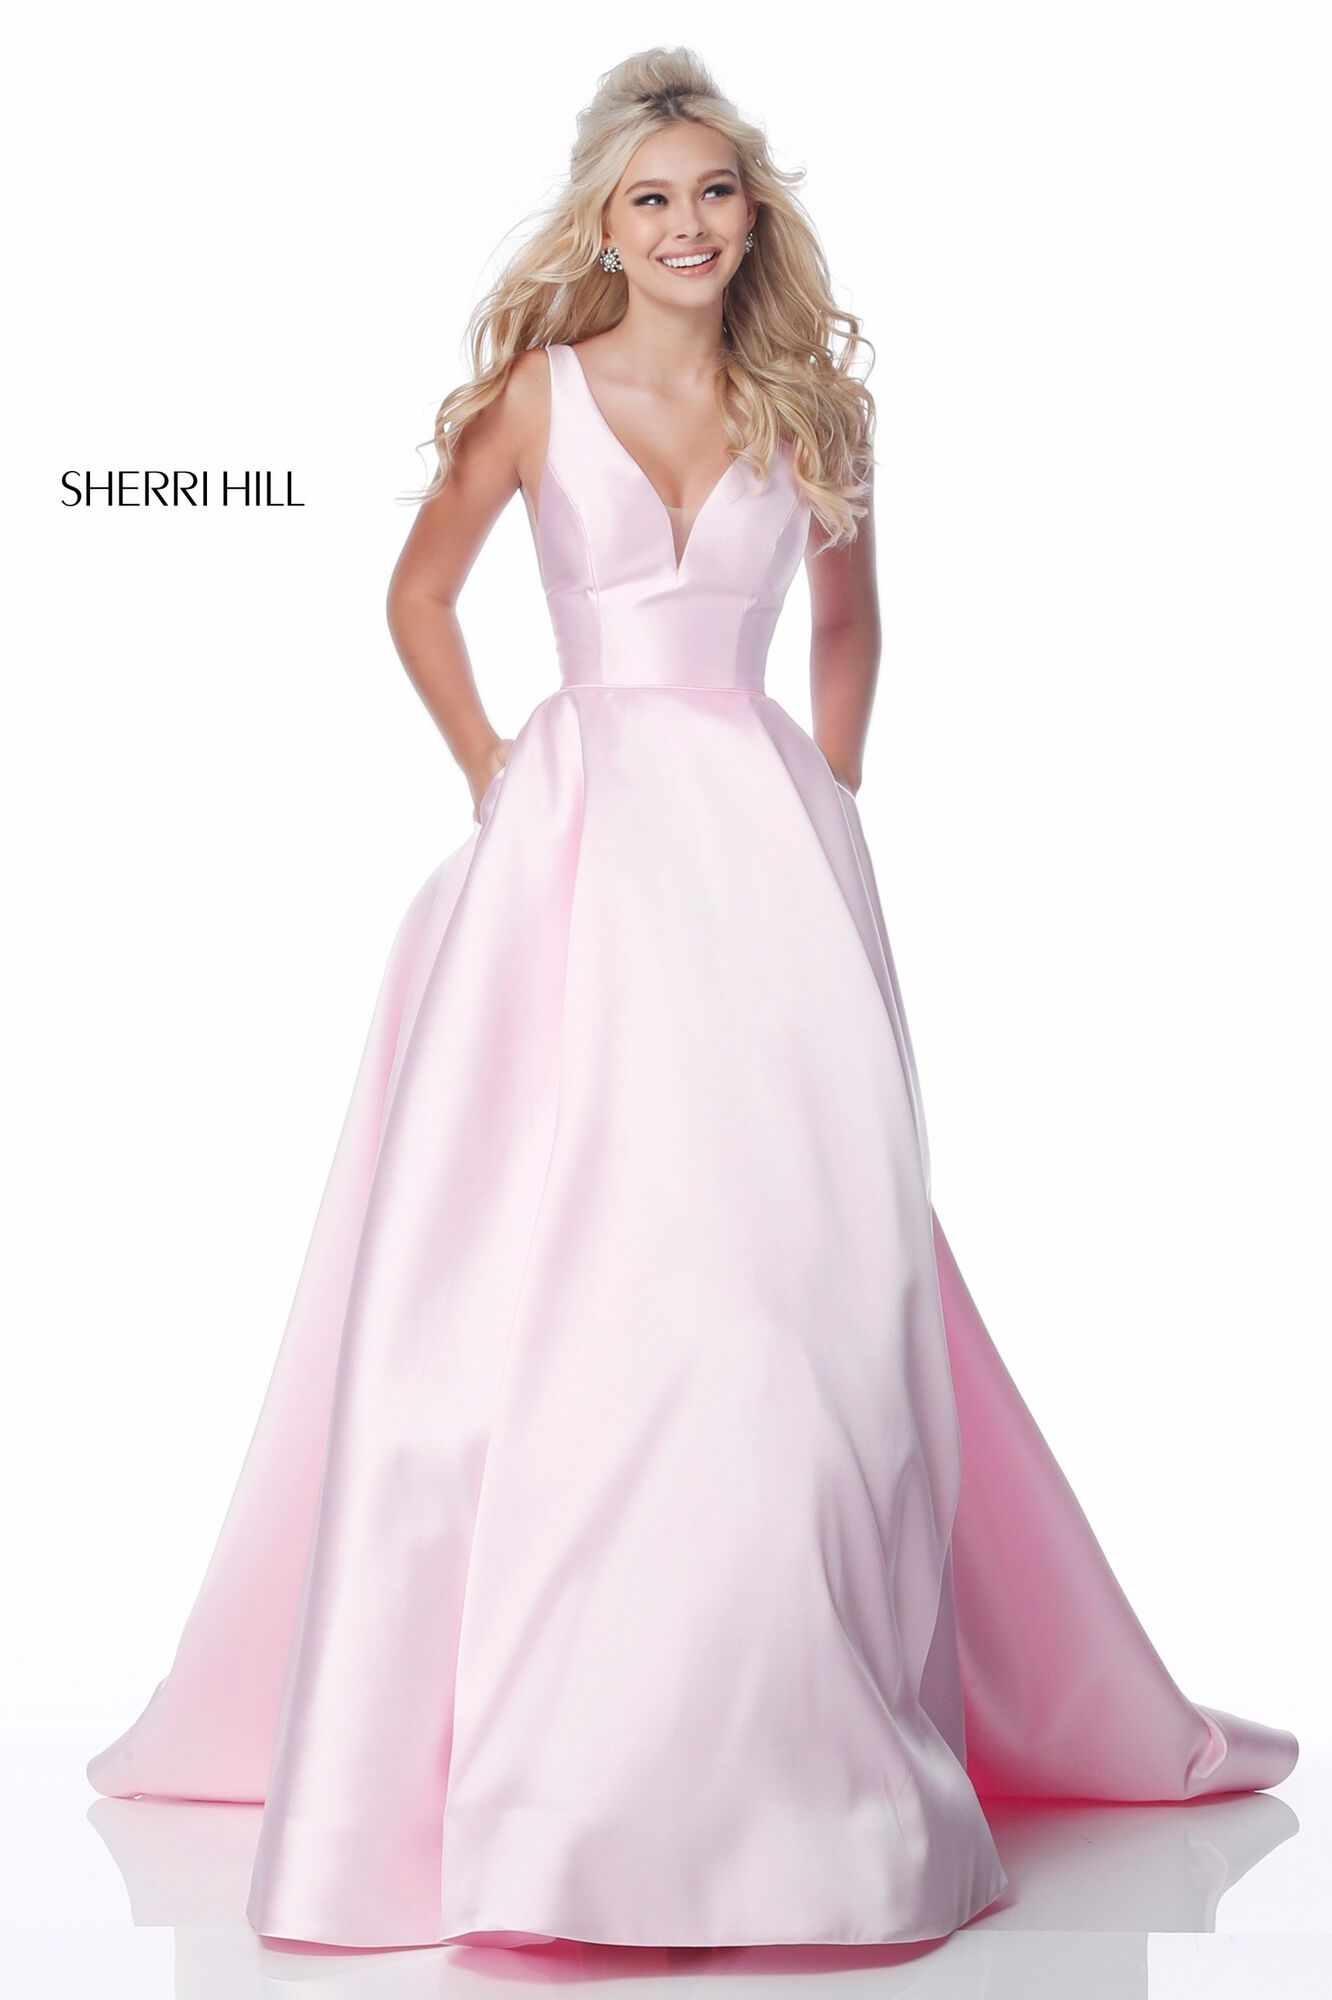 Buy Dress Style 51856 Designed By Sherrihill,Fall Black Tie Wedding Guest Dresses